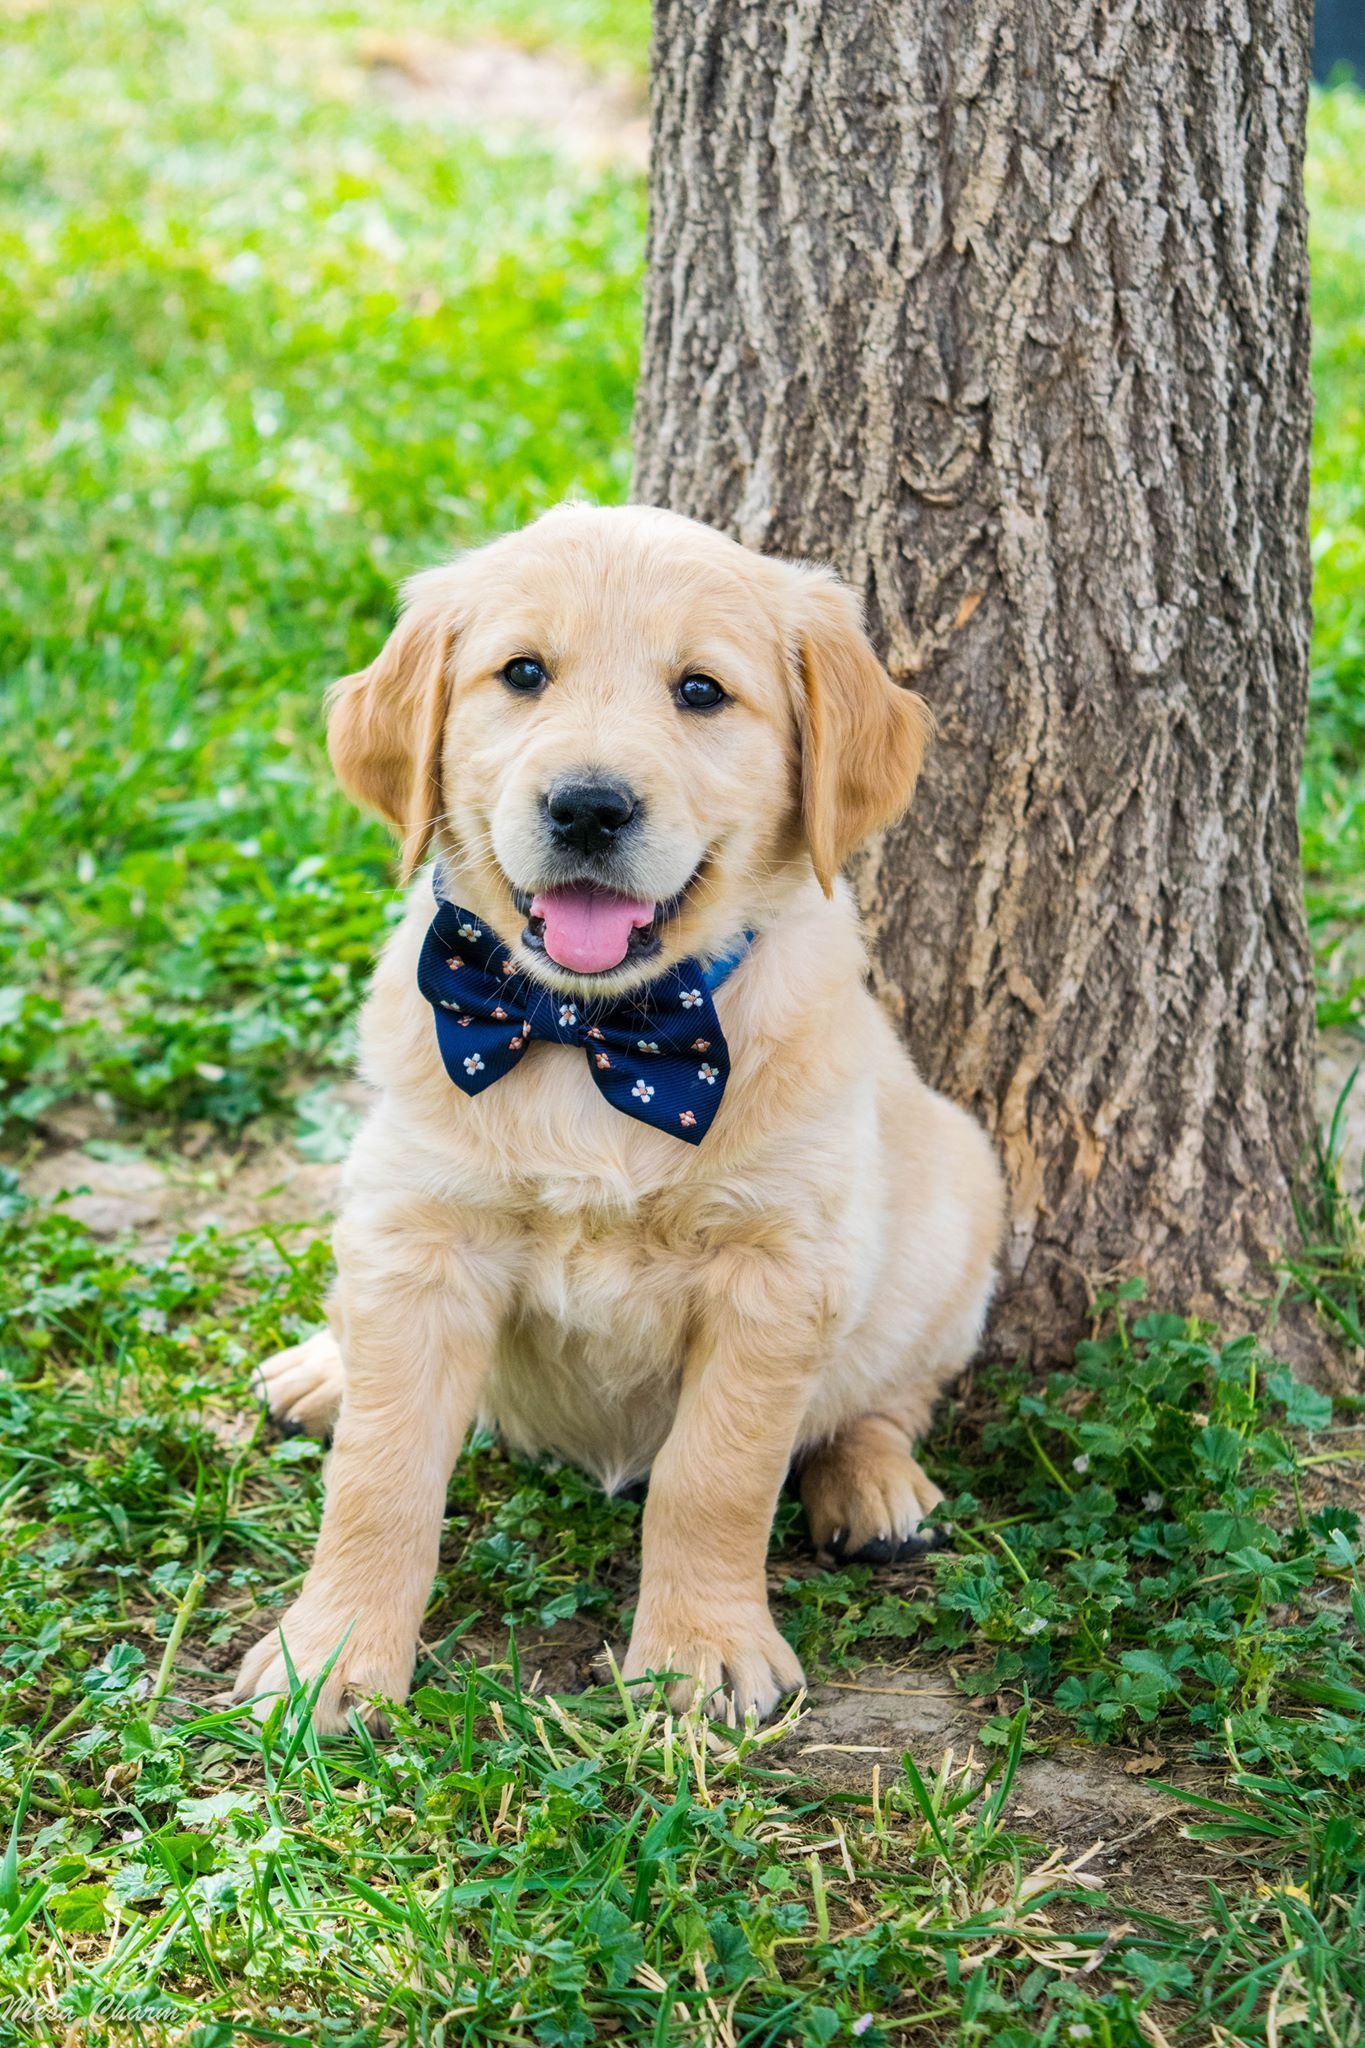 MIchelle Selby - Golden Retriever Puppies For Sale - Born on